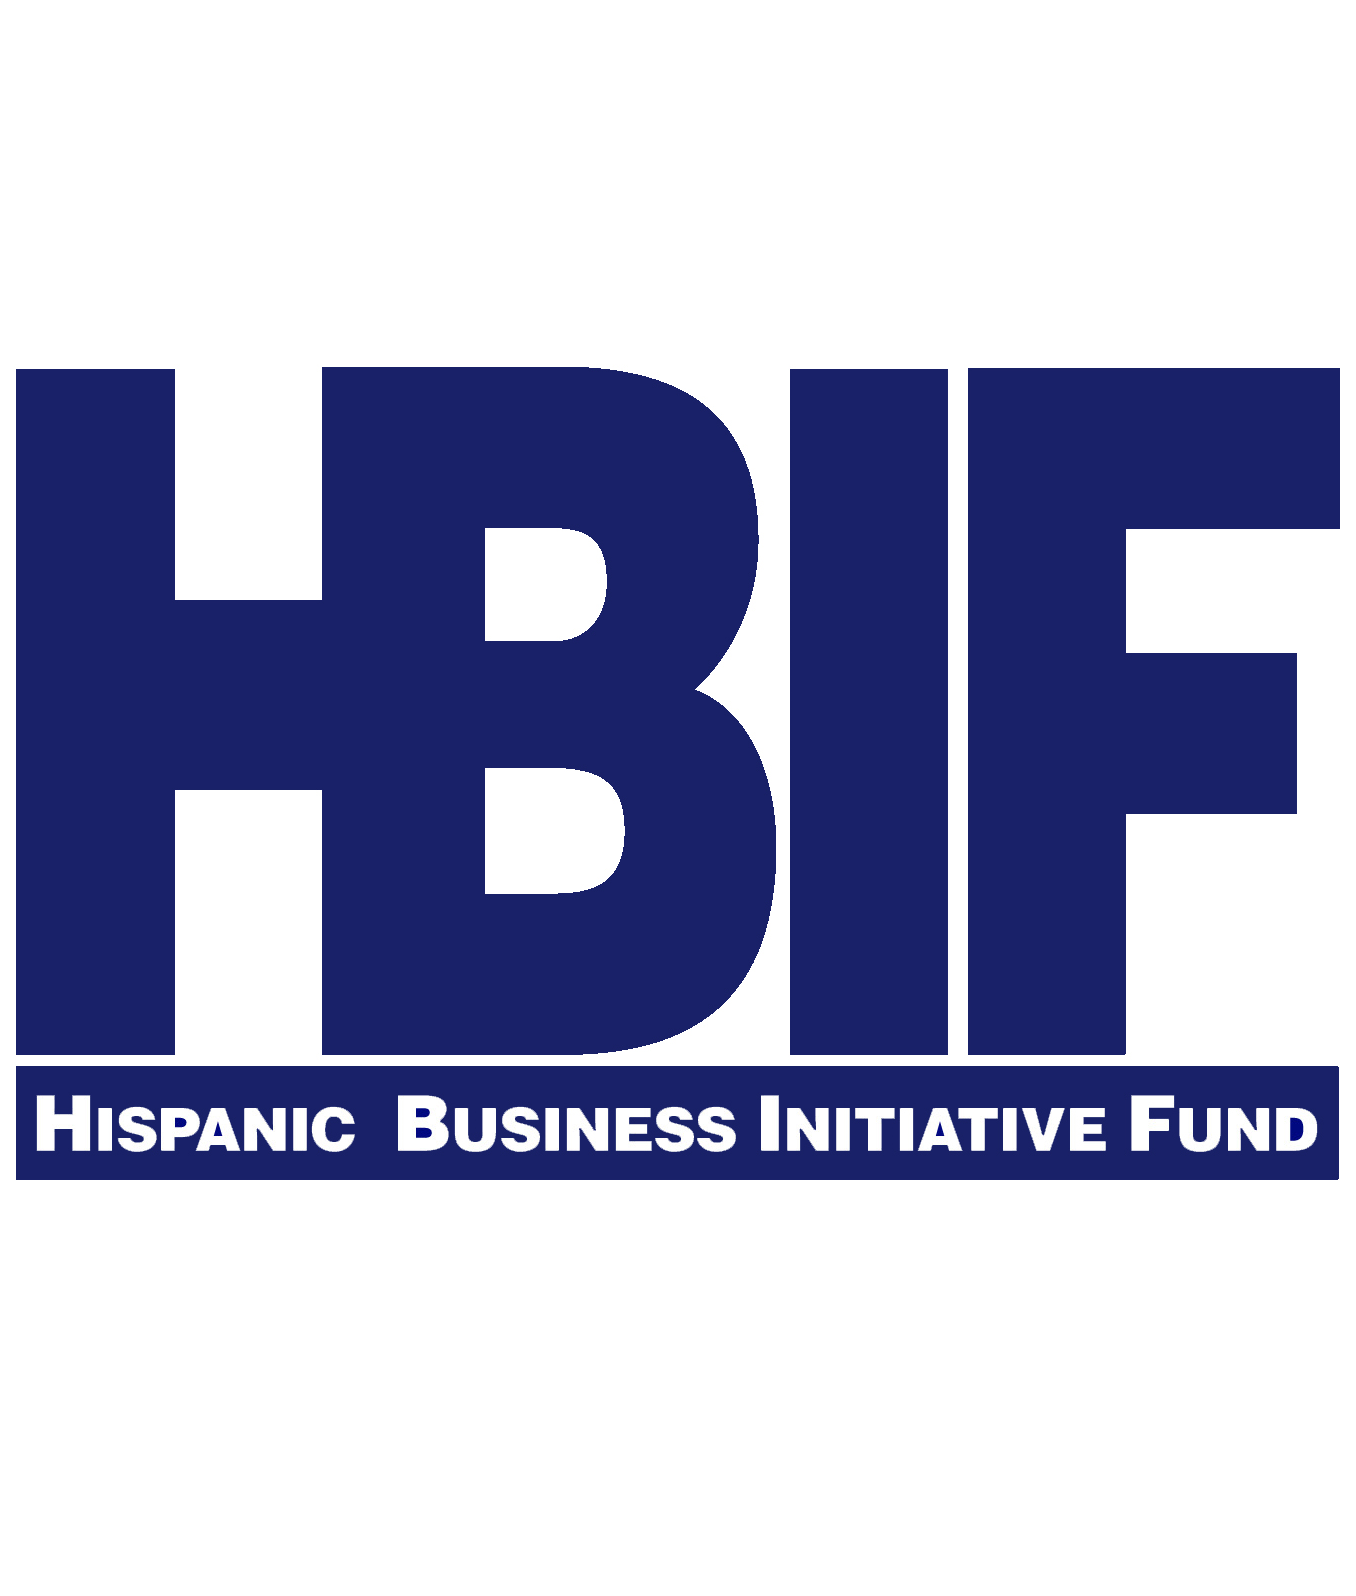 Hispanic Business Investment Fund